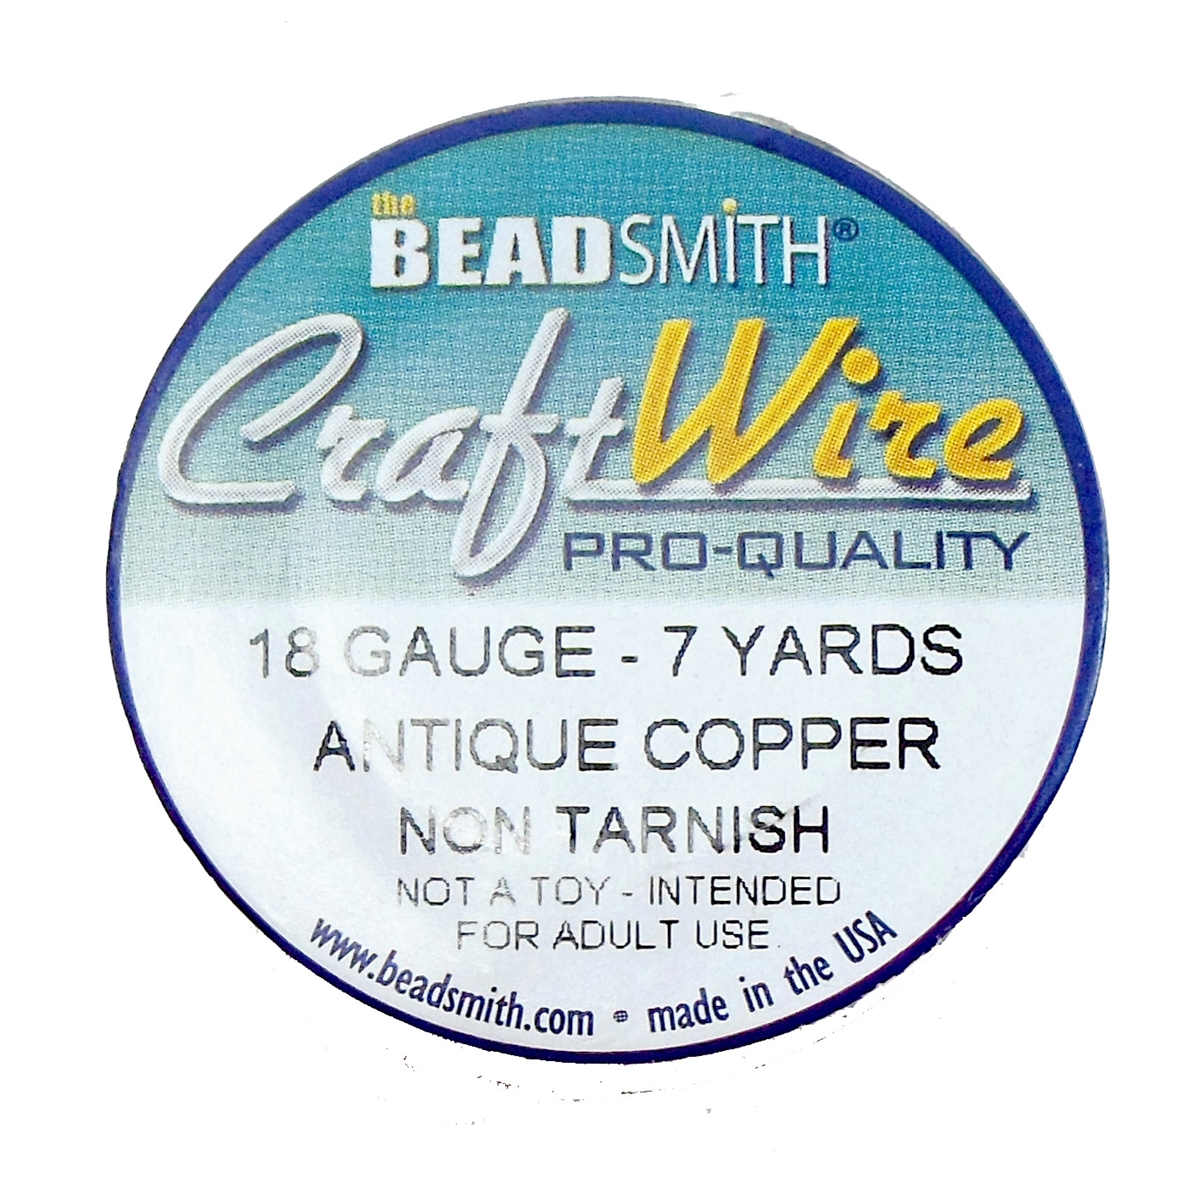 antique copper wire, jewelry wire, bead smith, 18 gauge, antique ...